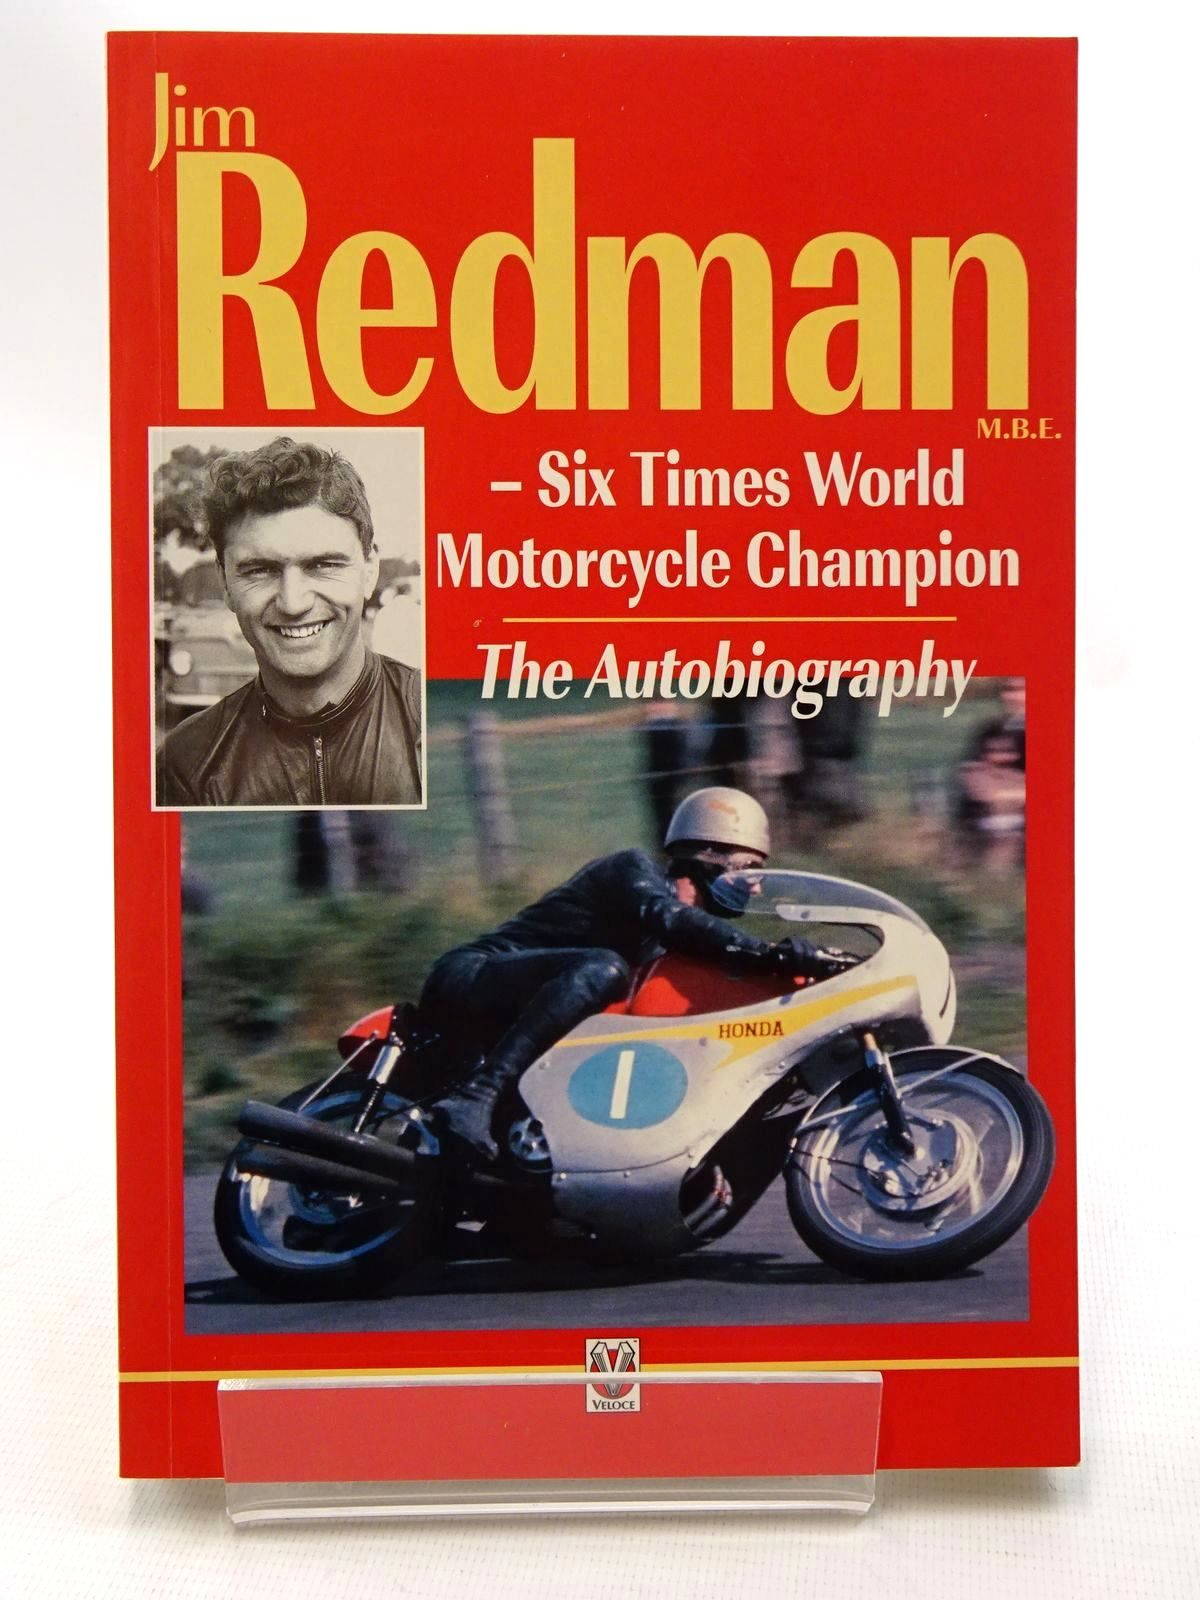 Photo of JIM REDMAN SIX TIMES WORLD MOTORCYCLE CHAMPION written by Redman, Jim published by Veloce Publishing Plc. (STOCK CODE: 1610390)  for sale by Stella & Rose's Books